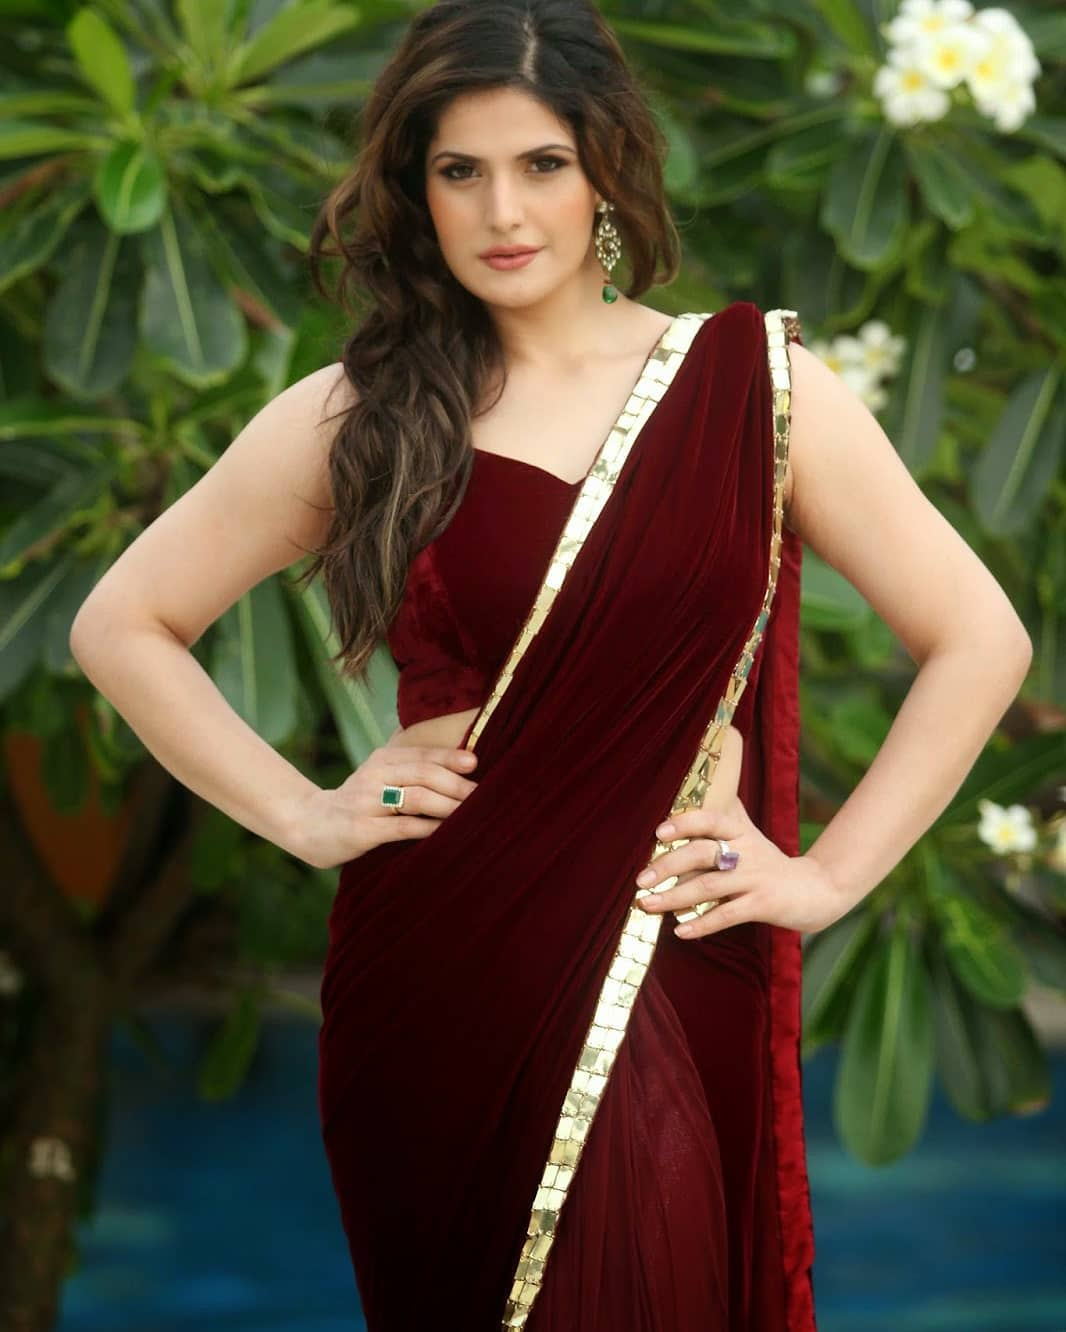 Zarine Khan Show Casing Her Most Amazing Curves In Maroon Revealing Saree